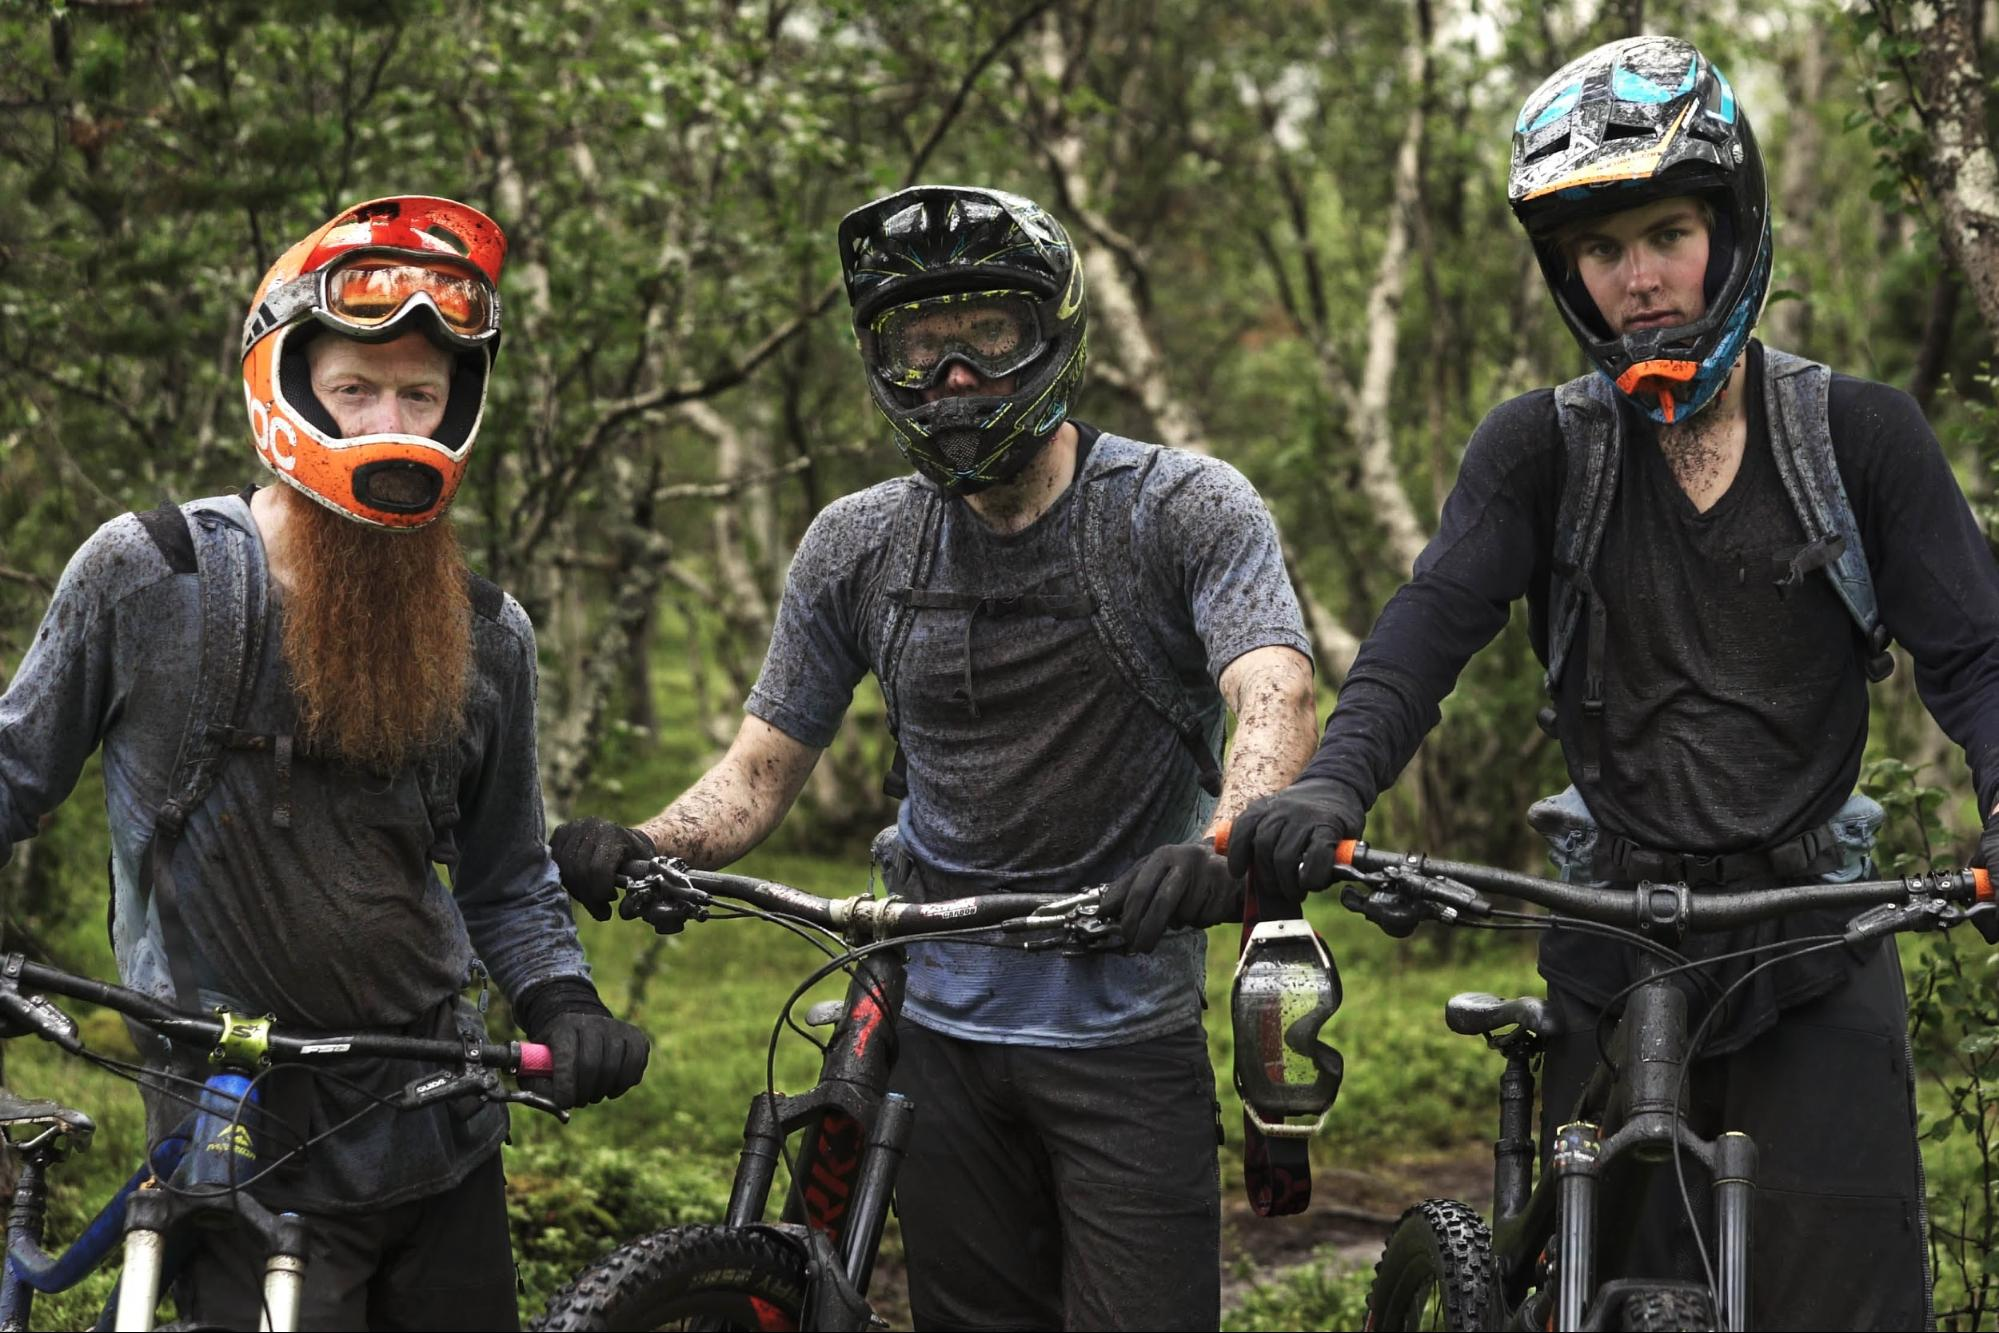 Mountain bikers covered in mud